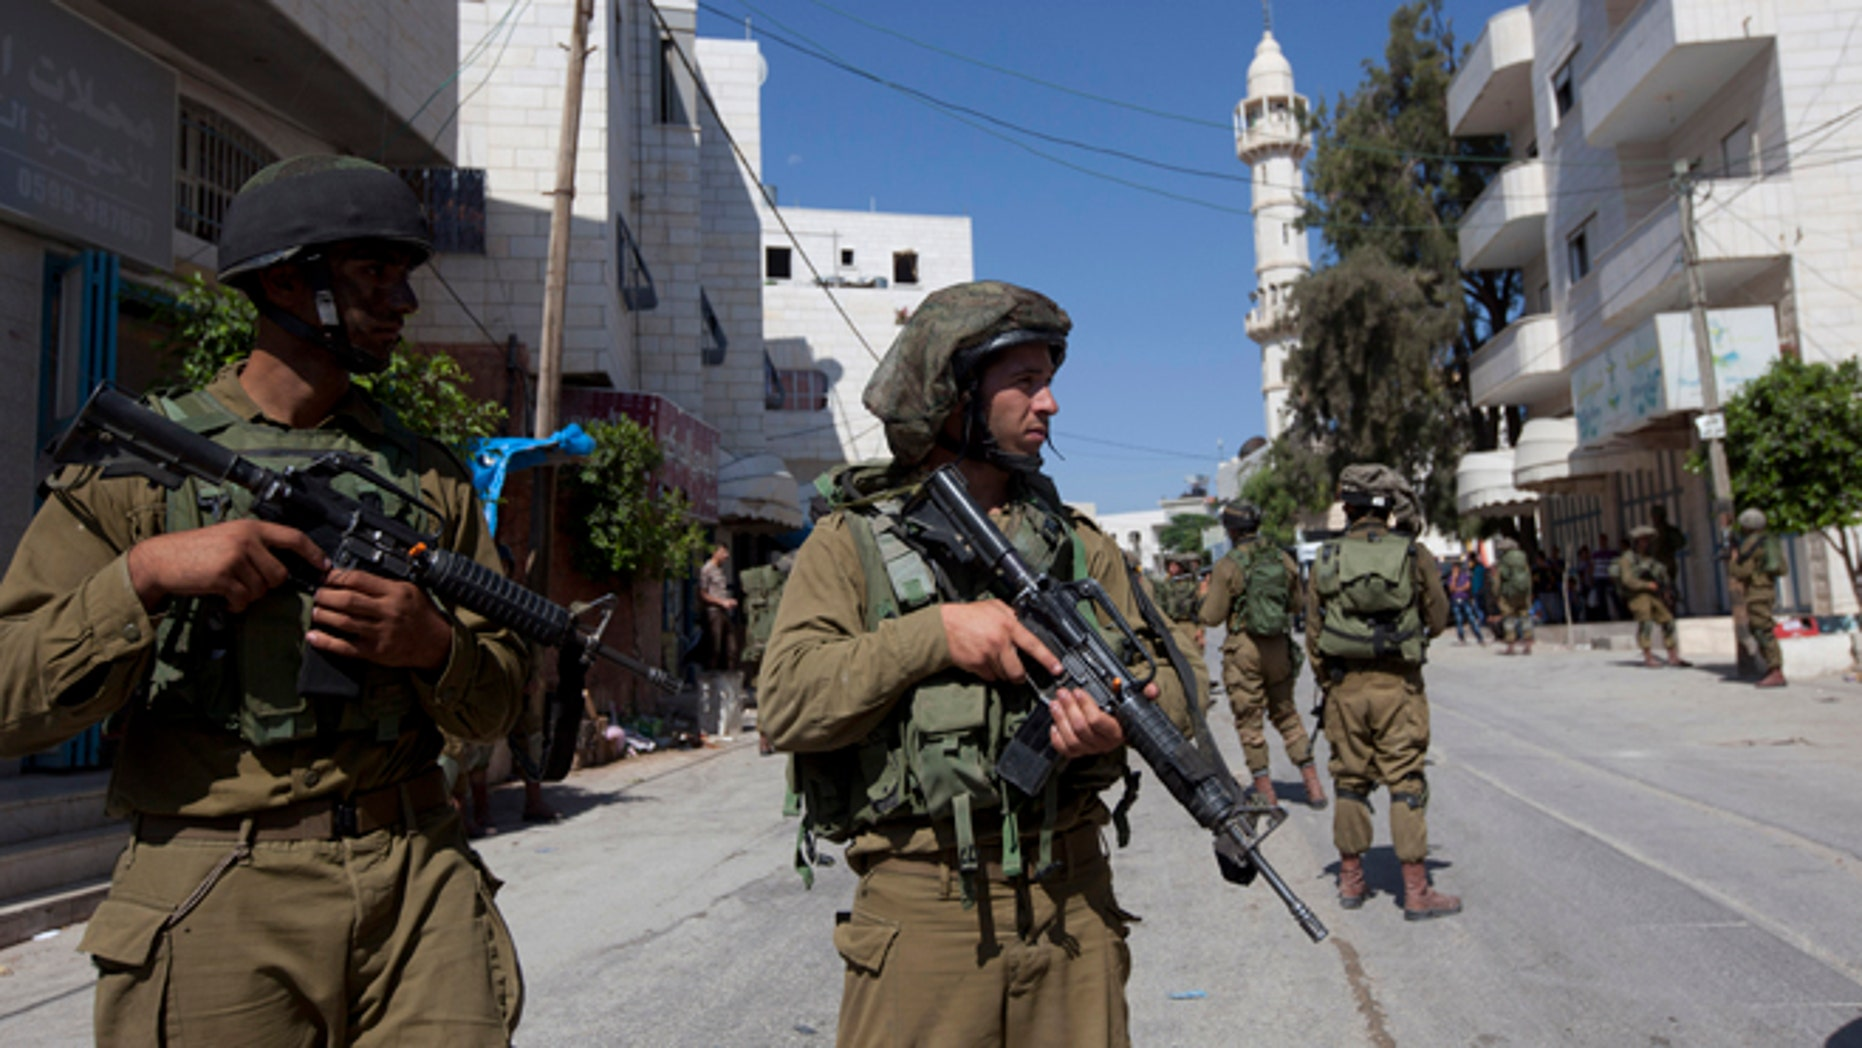 June 18, 2014: Israeli soldiers search for three missing Israeli teens believed to have been abducted in the West Bank, in the village of Taffouh near the West Bank city of Hebron. (AP/Majdi Mohammed)